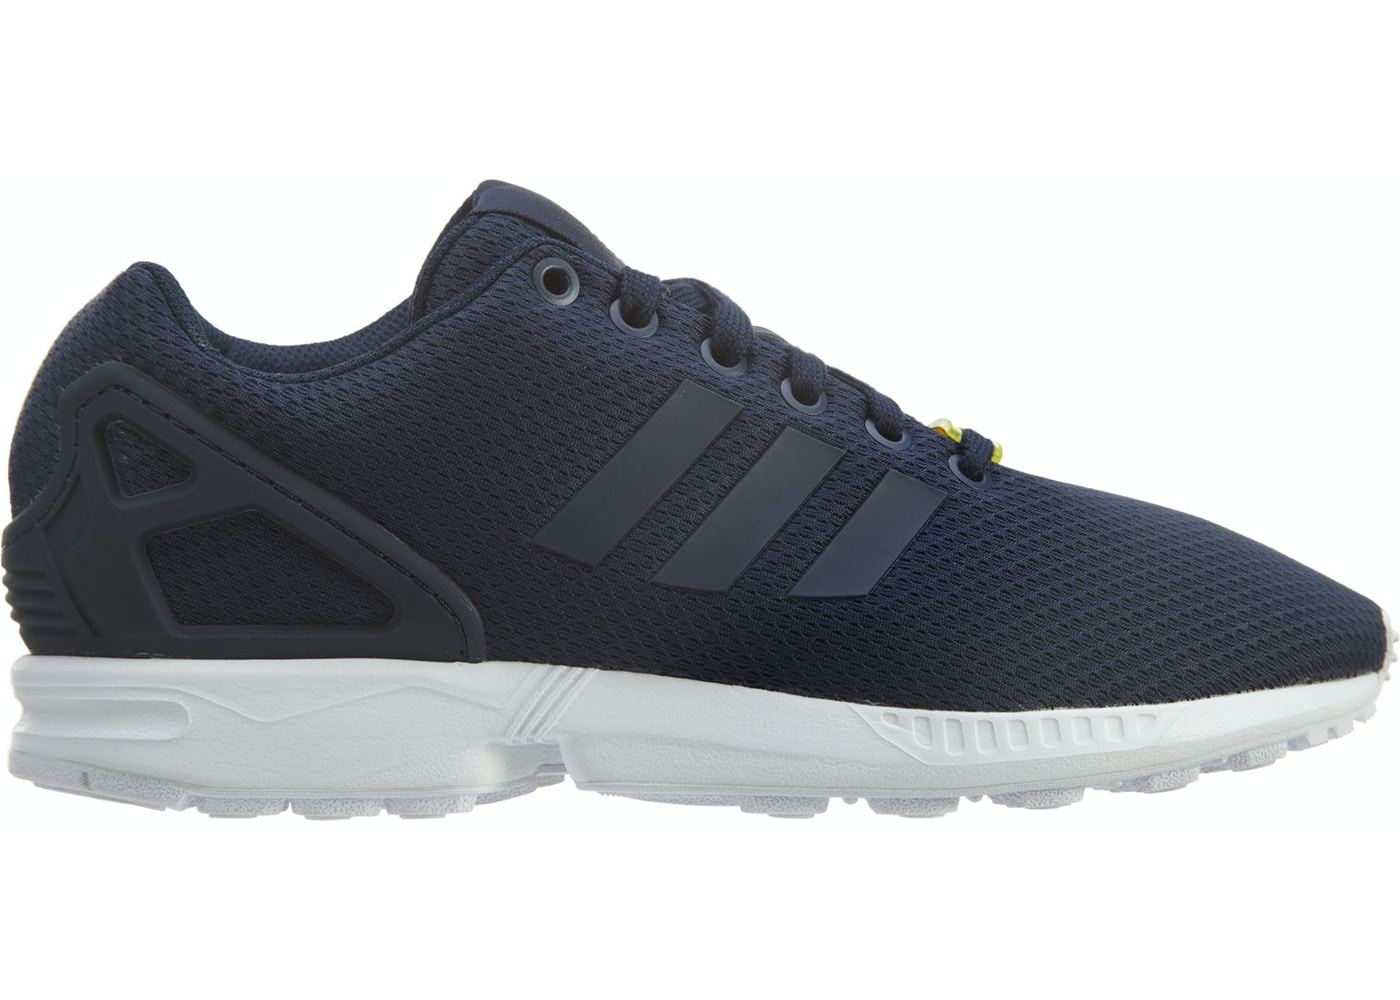 624ef5d7bb8a6 adidas Zx Flux Dark Blue Core White - M19841